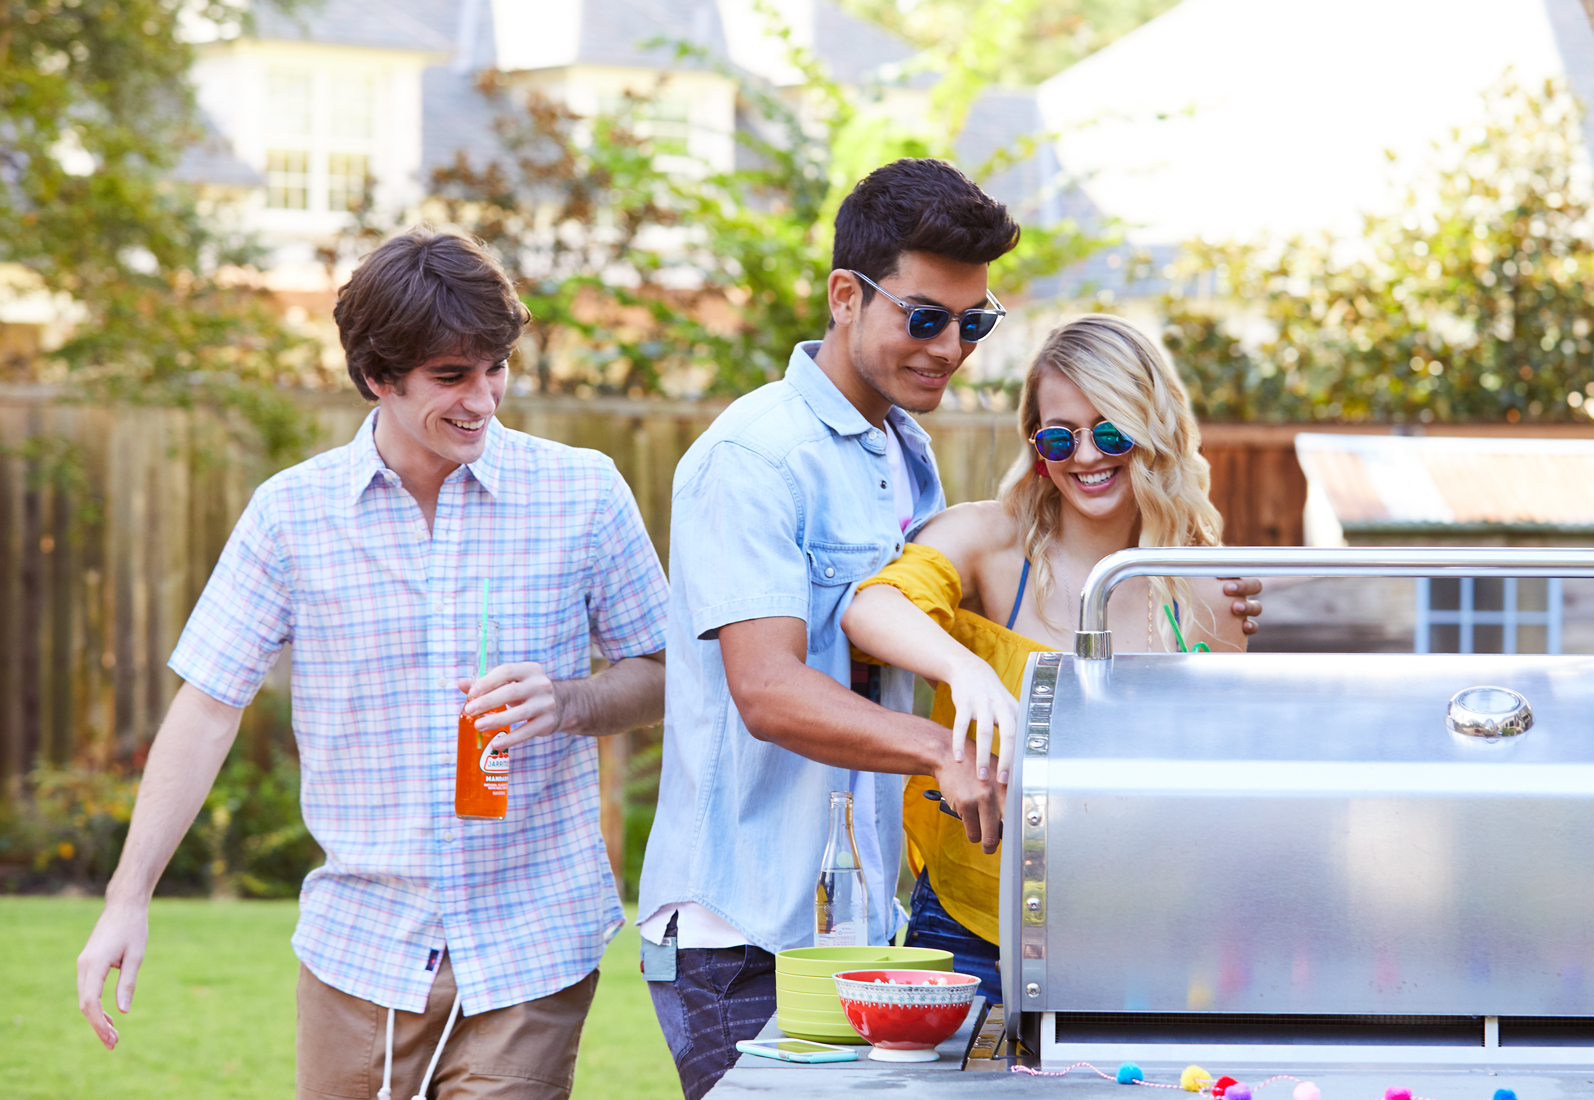 BROUSSARD_BackyardBBQ_3647